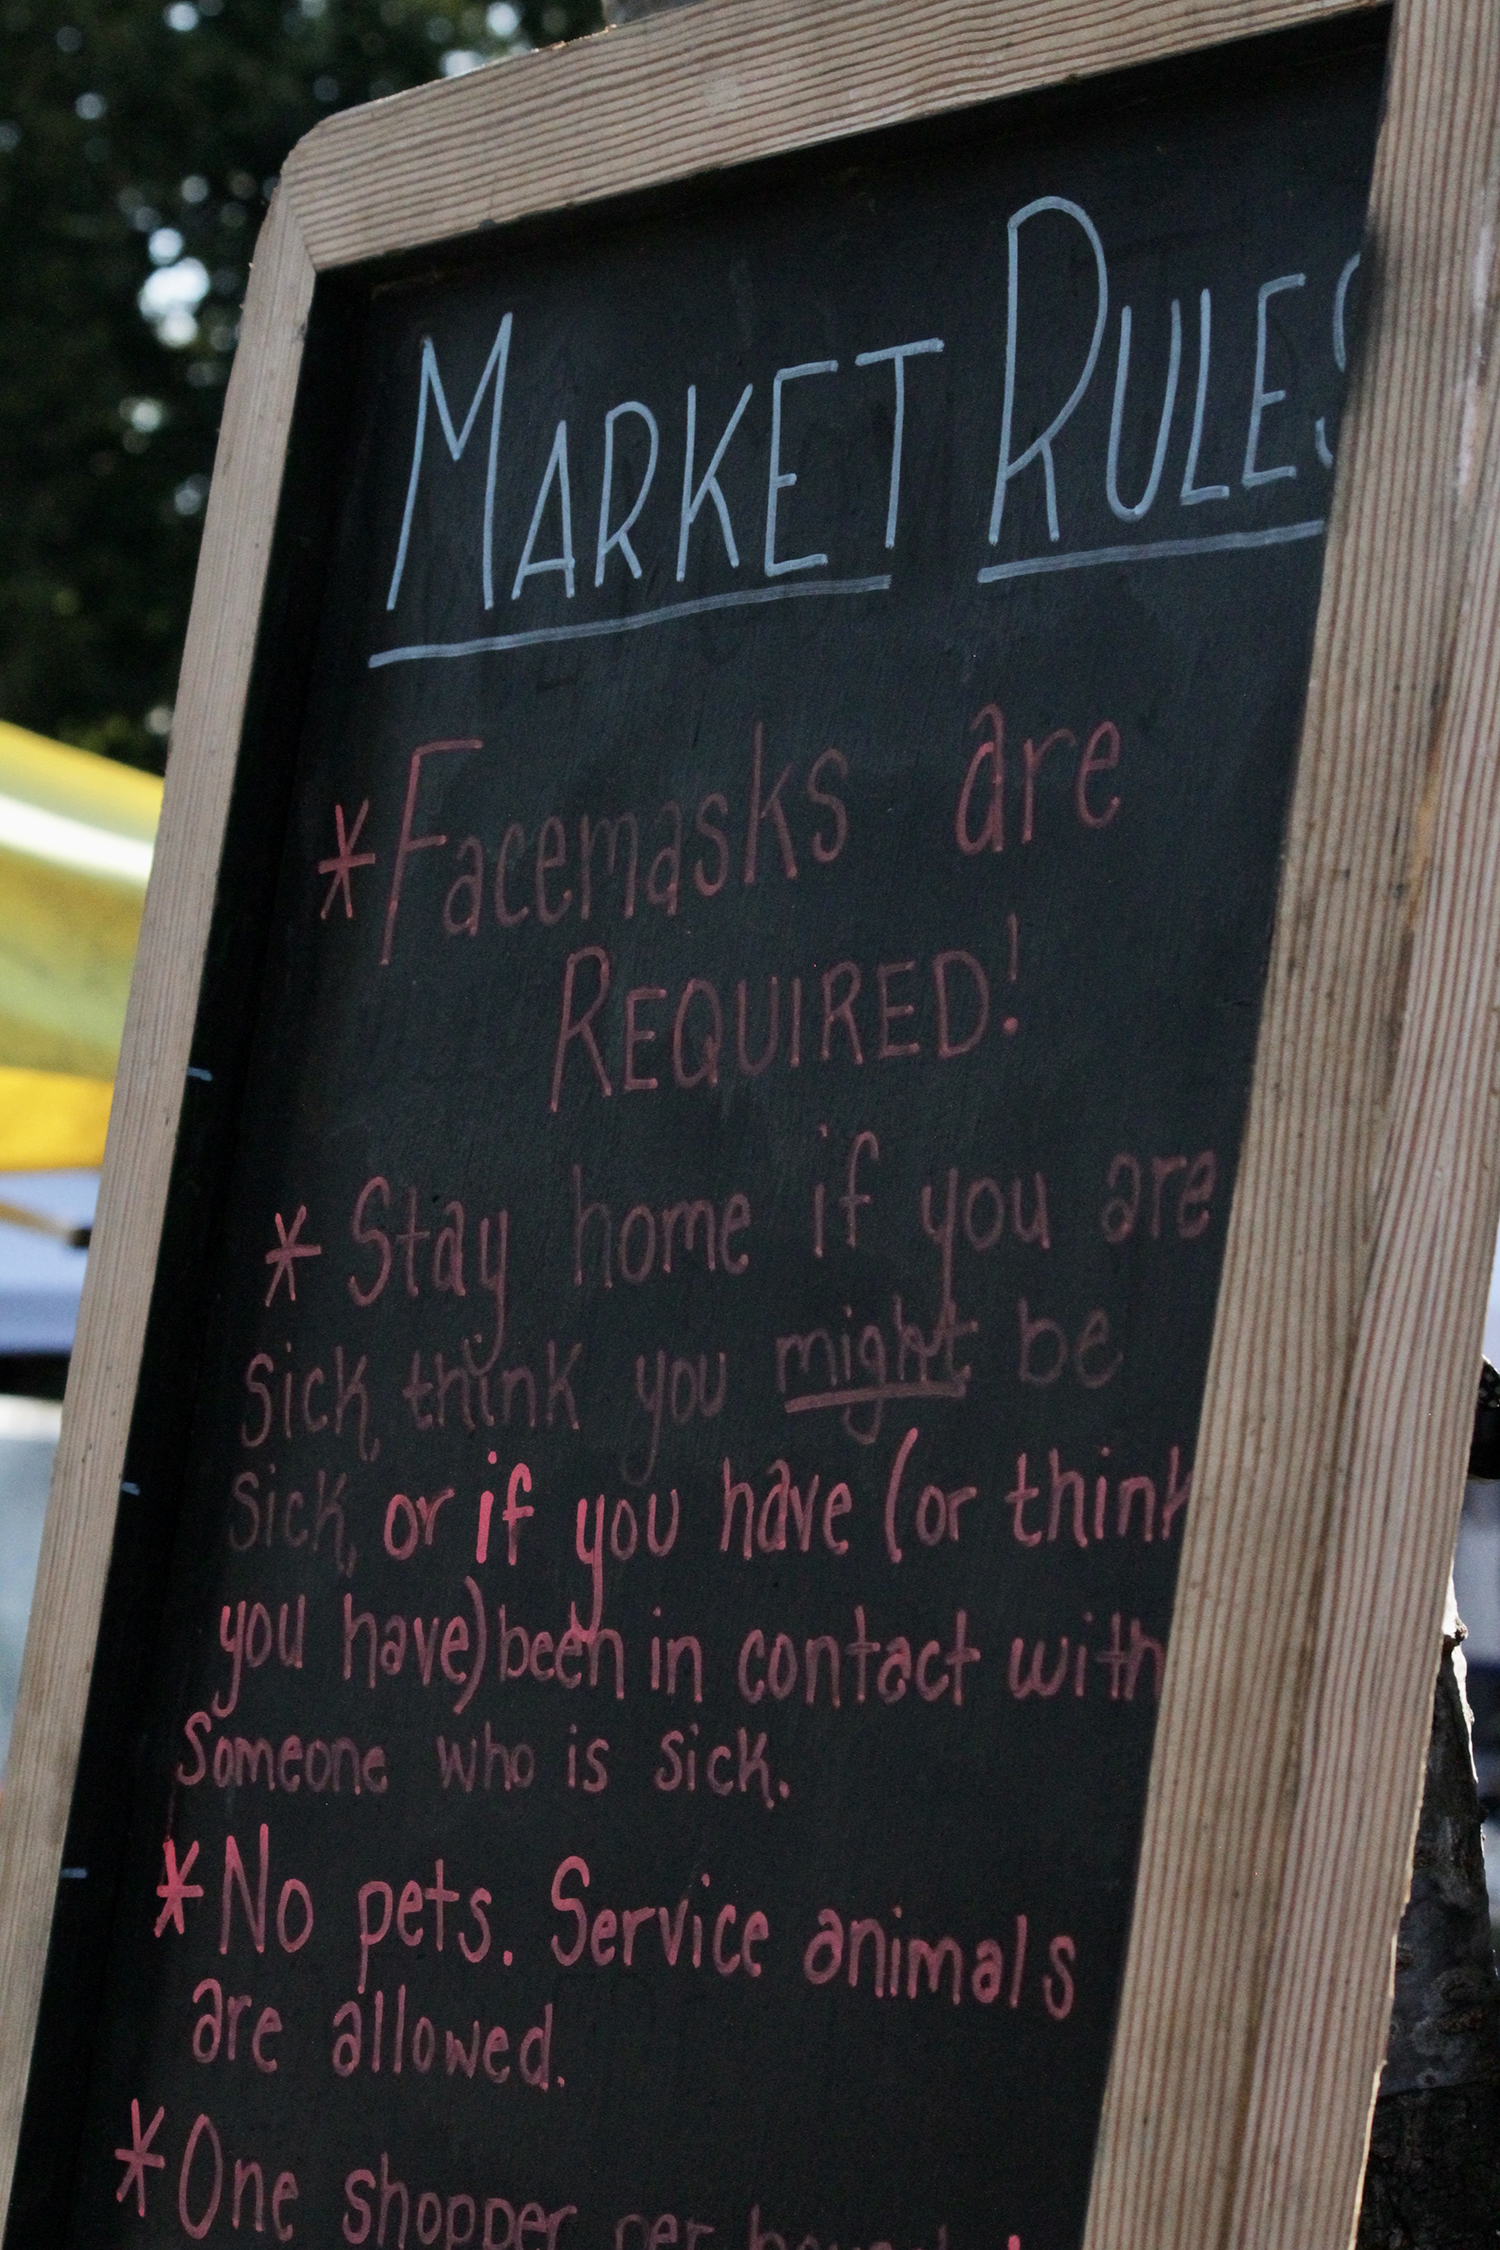 "Seattle's only independent farmers market is still up and running, despite the pandemic - but you if you've gone to the{&nbsp;}<a  href=""https://qafm.org/"" target=""_blank"" title=""https://qafm.org/"">Queen Anne Farmers Market{&nbsp;}</a>in years past, the 2020 version look a LOT different. Still happening Thursdays at 3 p.m. at West Crockett - and still many of the same booths - but that's about where the similarities stop. The Market has instilled{&nbsp;}<a  href=""https://qafm.org/covid19"" target=""_blank"" title=""https://qafm.org/covid19"">strict rules</a>; like only two people allowed per stall, no touching of products, one person per household (no kids if possible), no sampling or activities,{&nbsp;}<a  href=""https://qafm.org/covid19"" target=""_blank"" title=""https://qafm.org/covid19"">and more</a>. When we visited this week, we still saw a pretty busy market - but for the most part those we talked to (shopper and vendors) were appreciative at how most were respecting the rules. (Image: Maile Anderson / Seattle Refined"